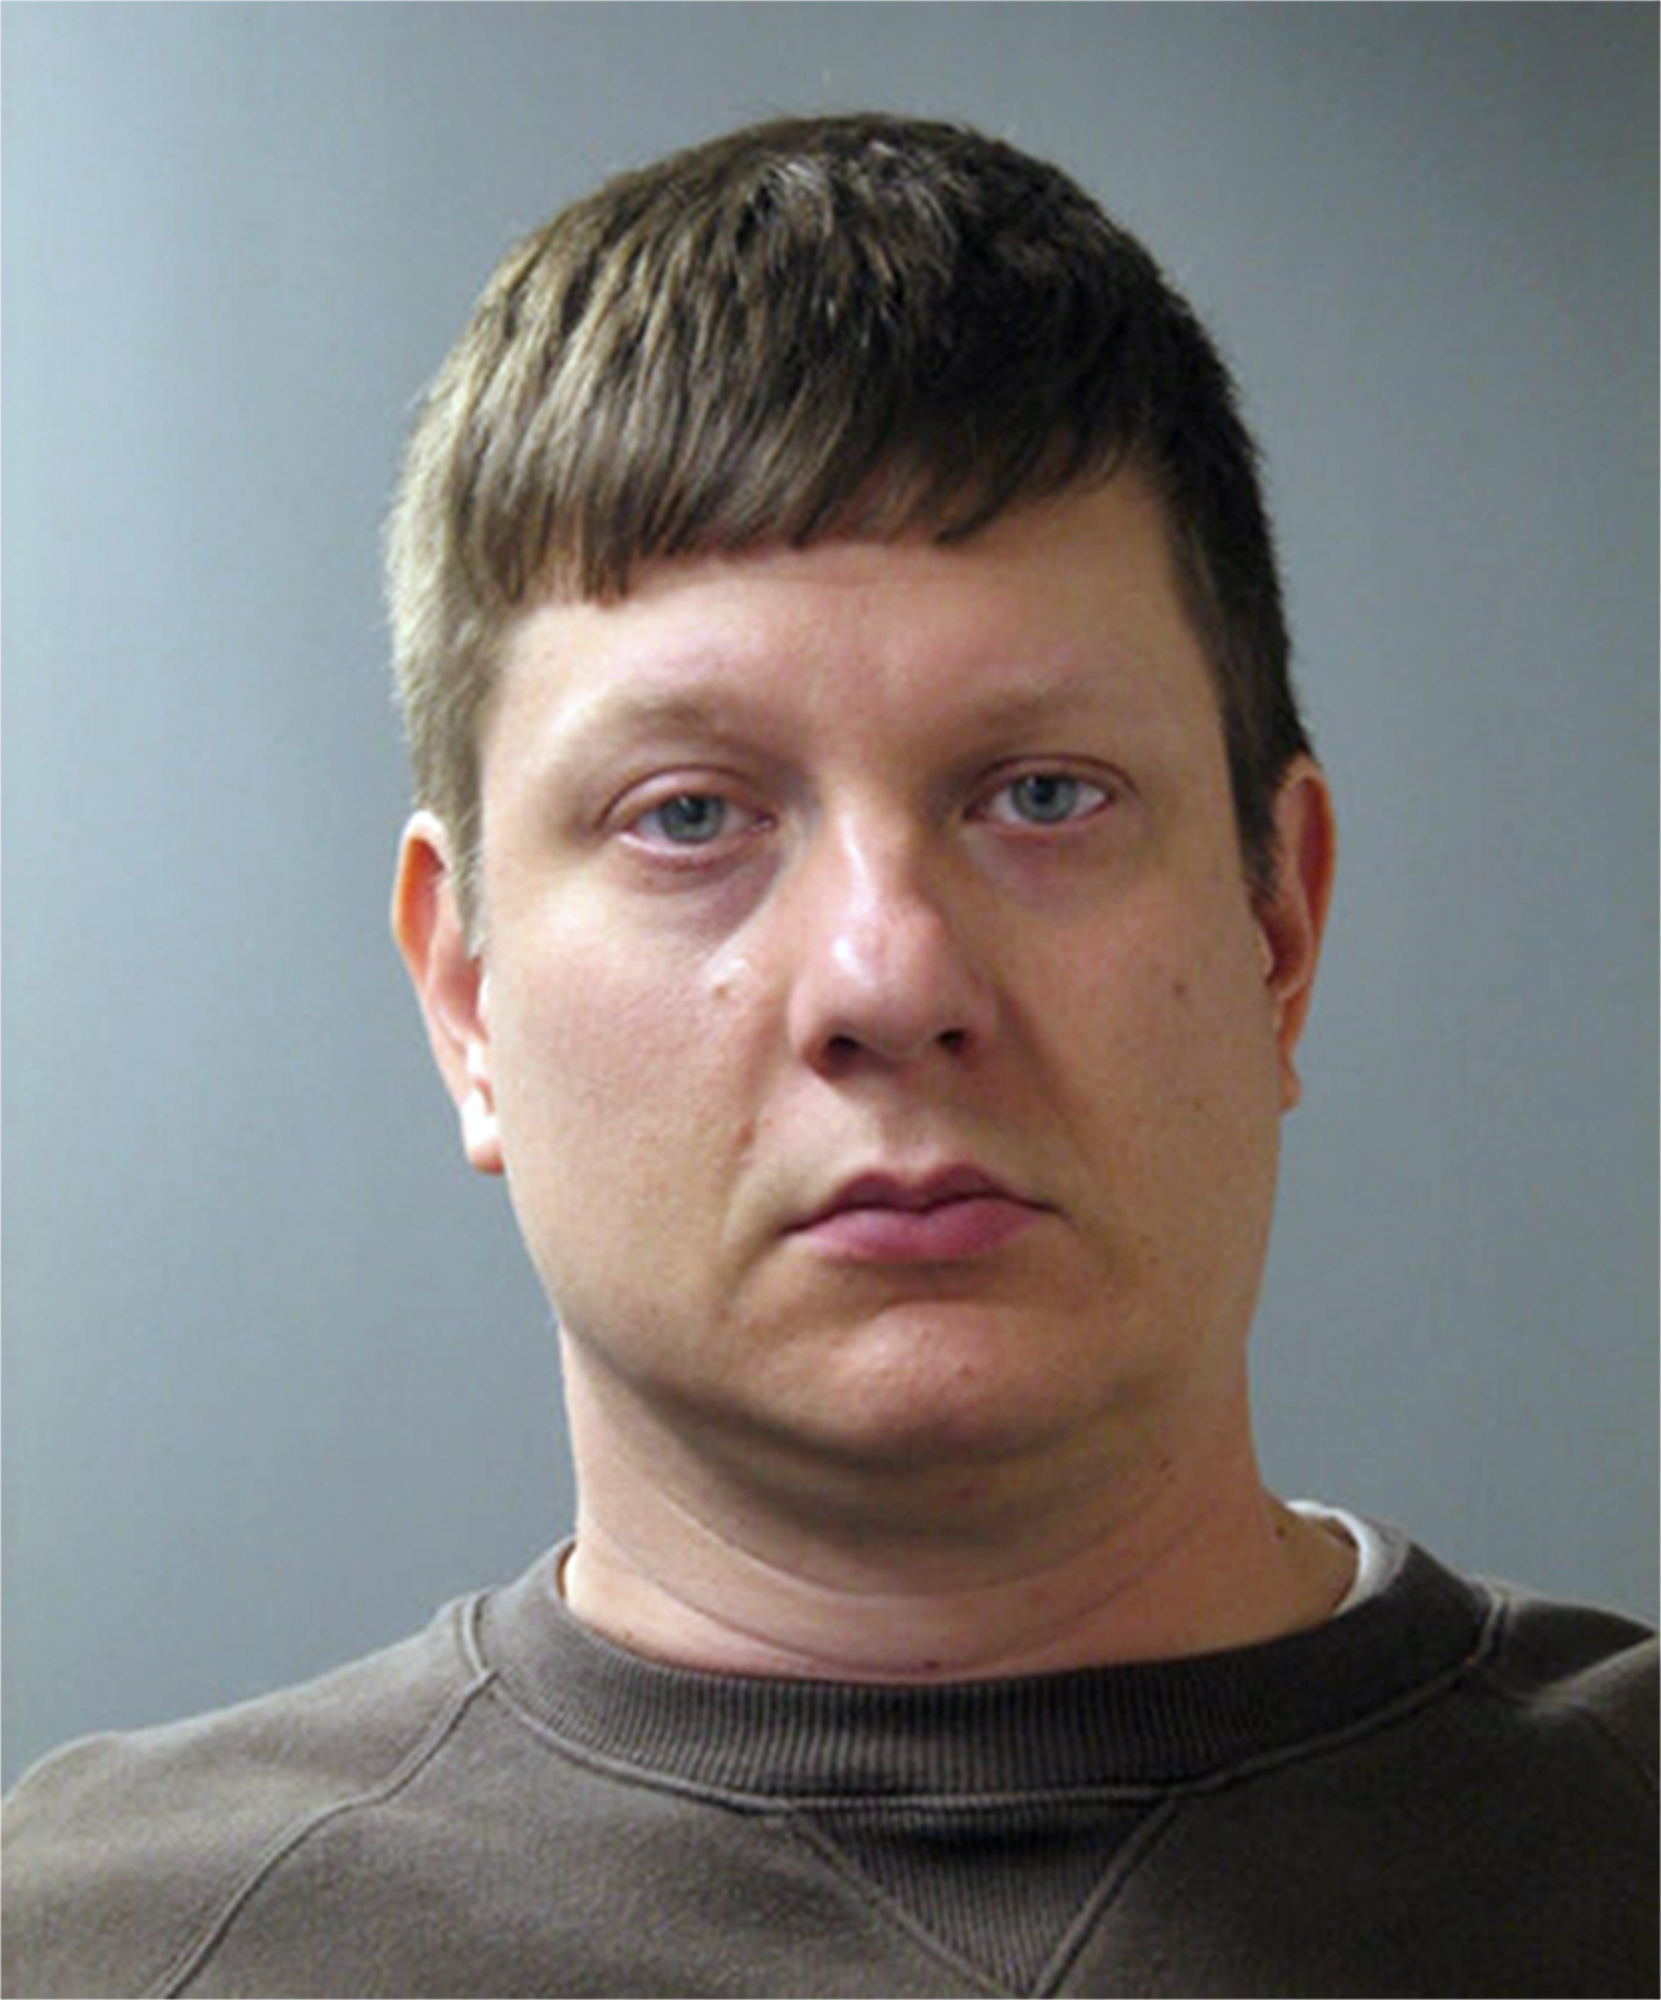 A photo of Chicago police Officer Jason Van Dyke released by the Cook County State's Attorney's Office on Nov. 24, 2015.